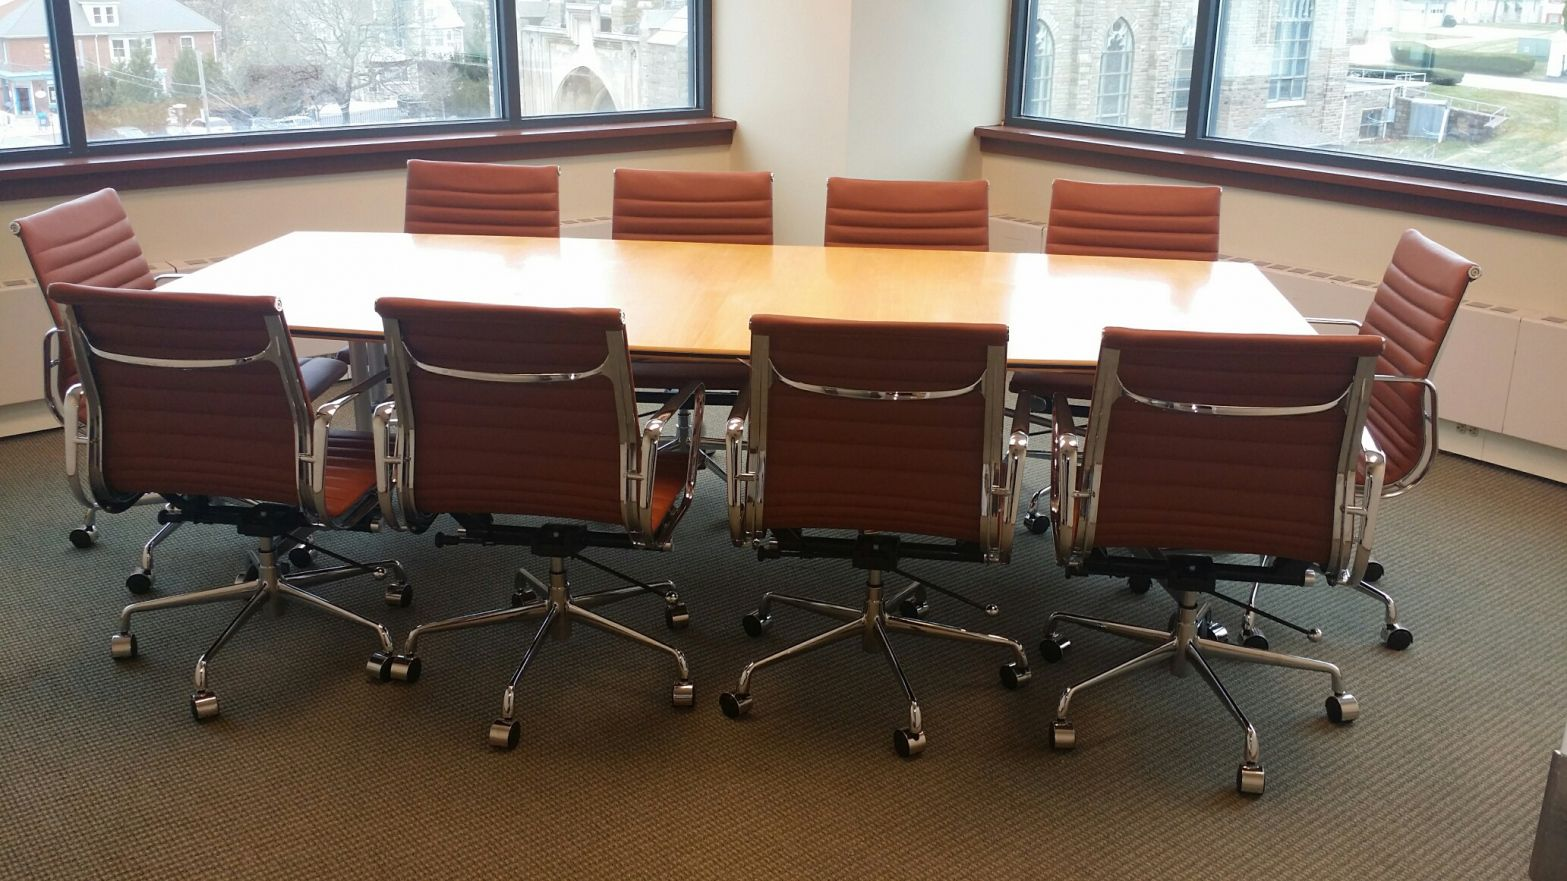 70 used office furniture king of prussia pa home office furniture rh pinterest com au King of Prussia Pennsylvania office furniture near king of prussia pa